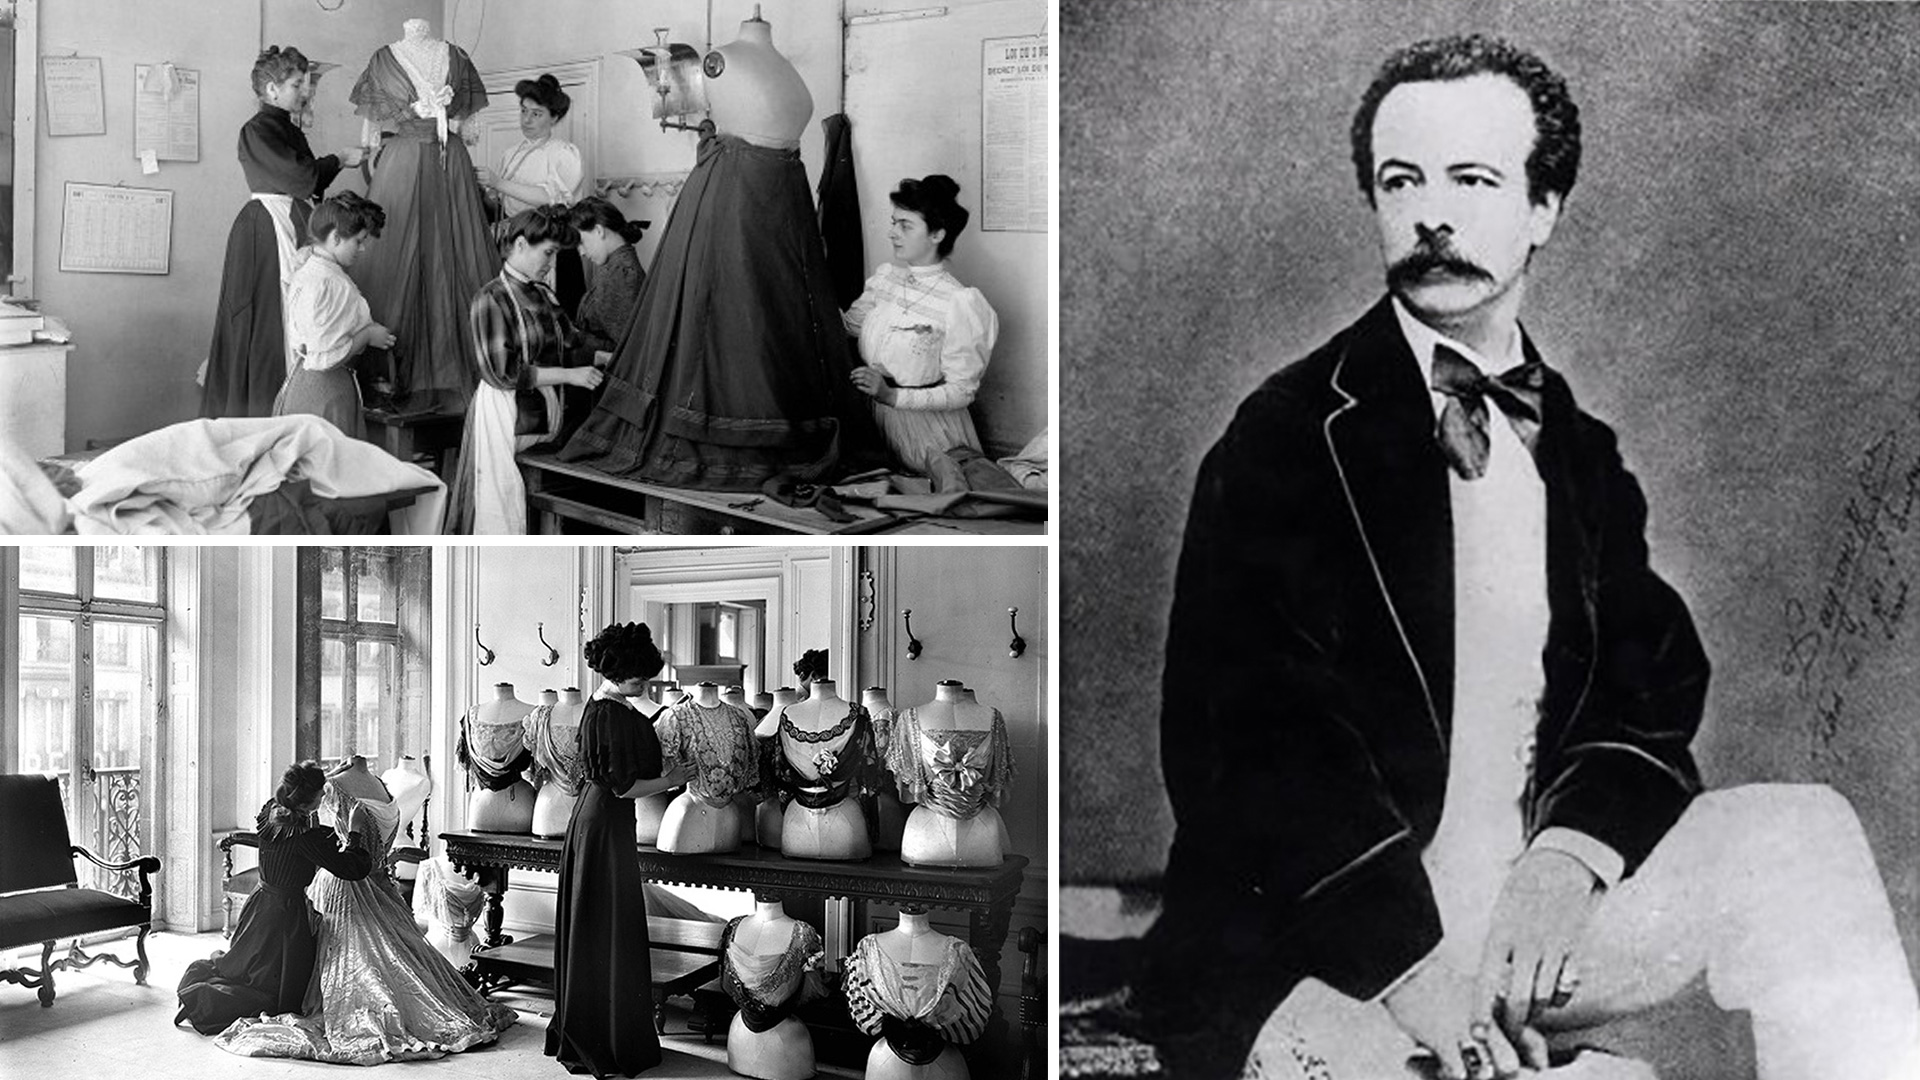 The World S First Fashion Designer Charles Frederick Worth